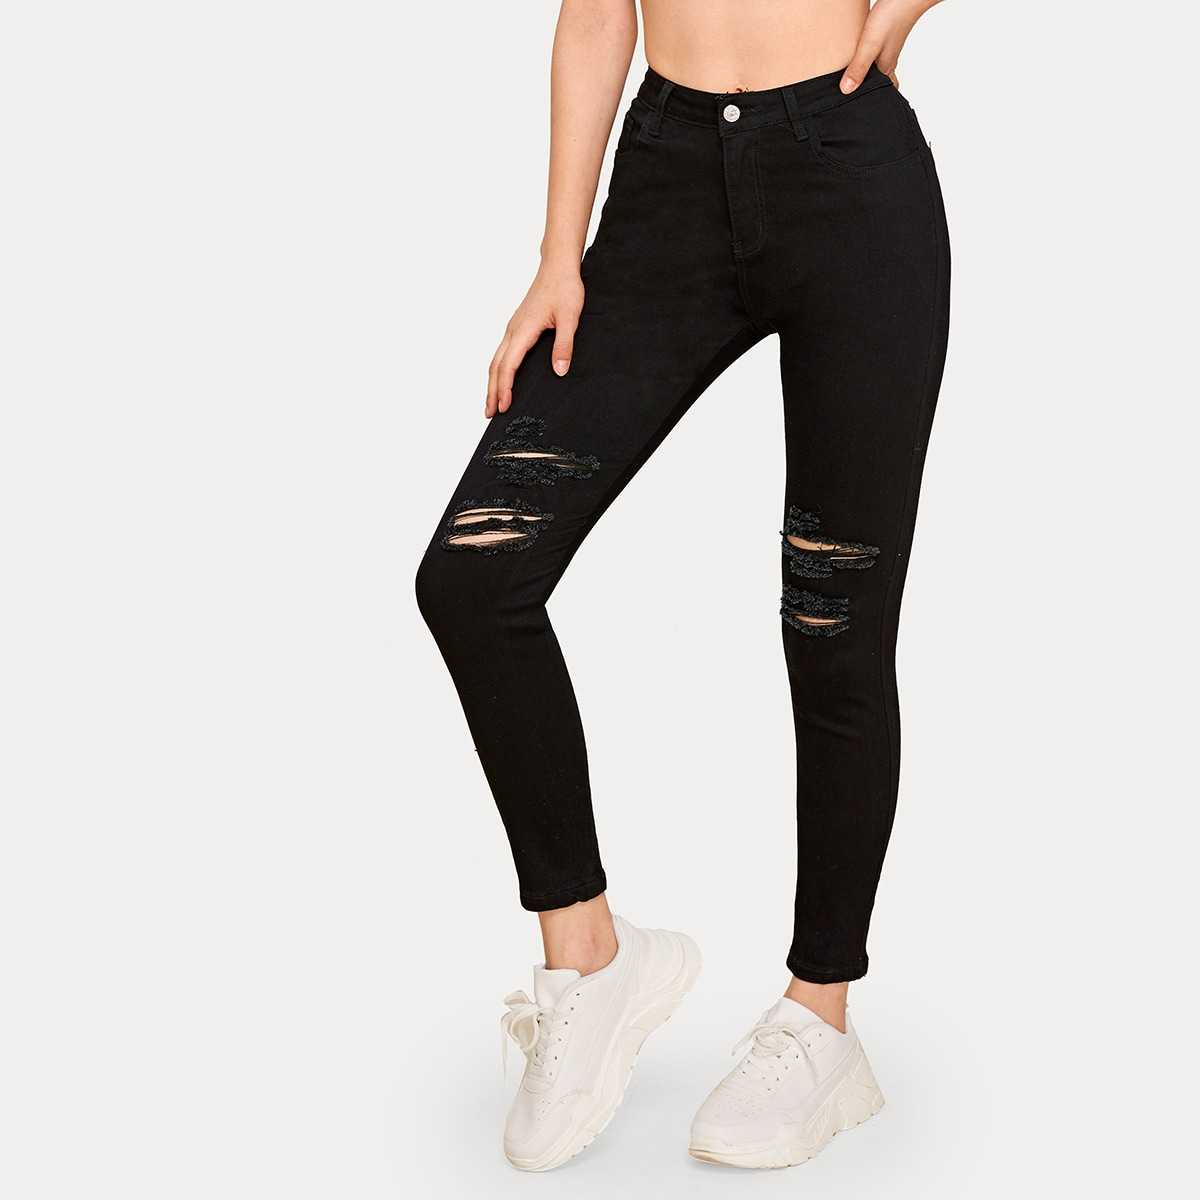 Button Fly Ripped Skinny Jeans in Black by ROMWE on GOOFASH